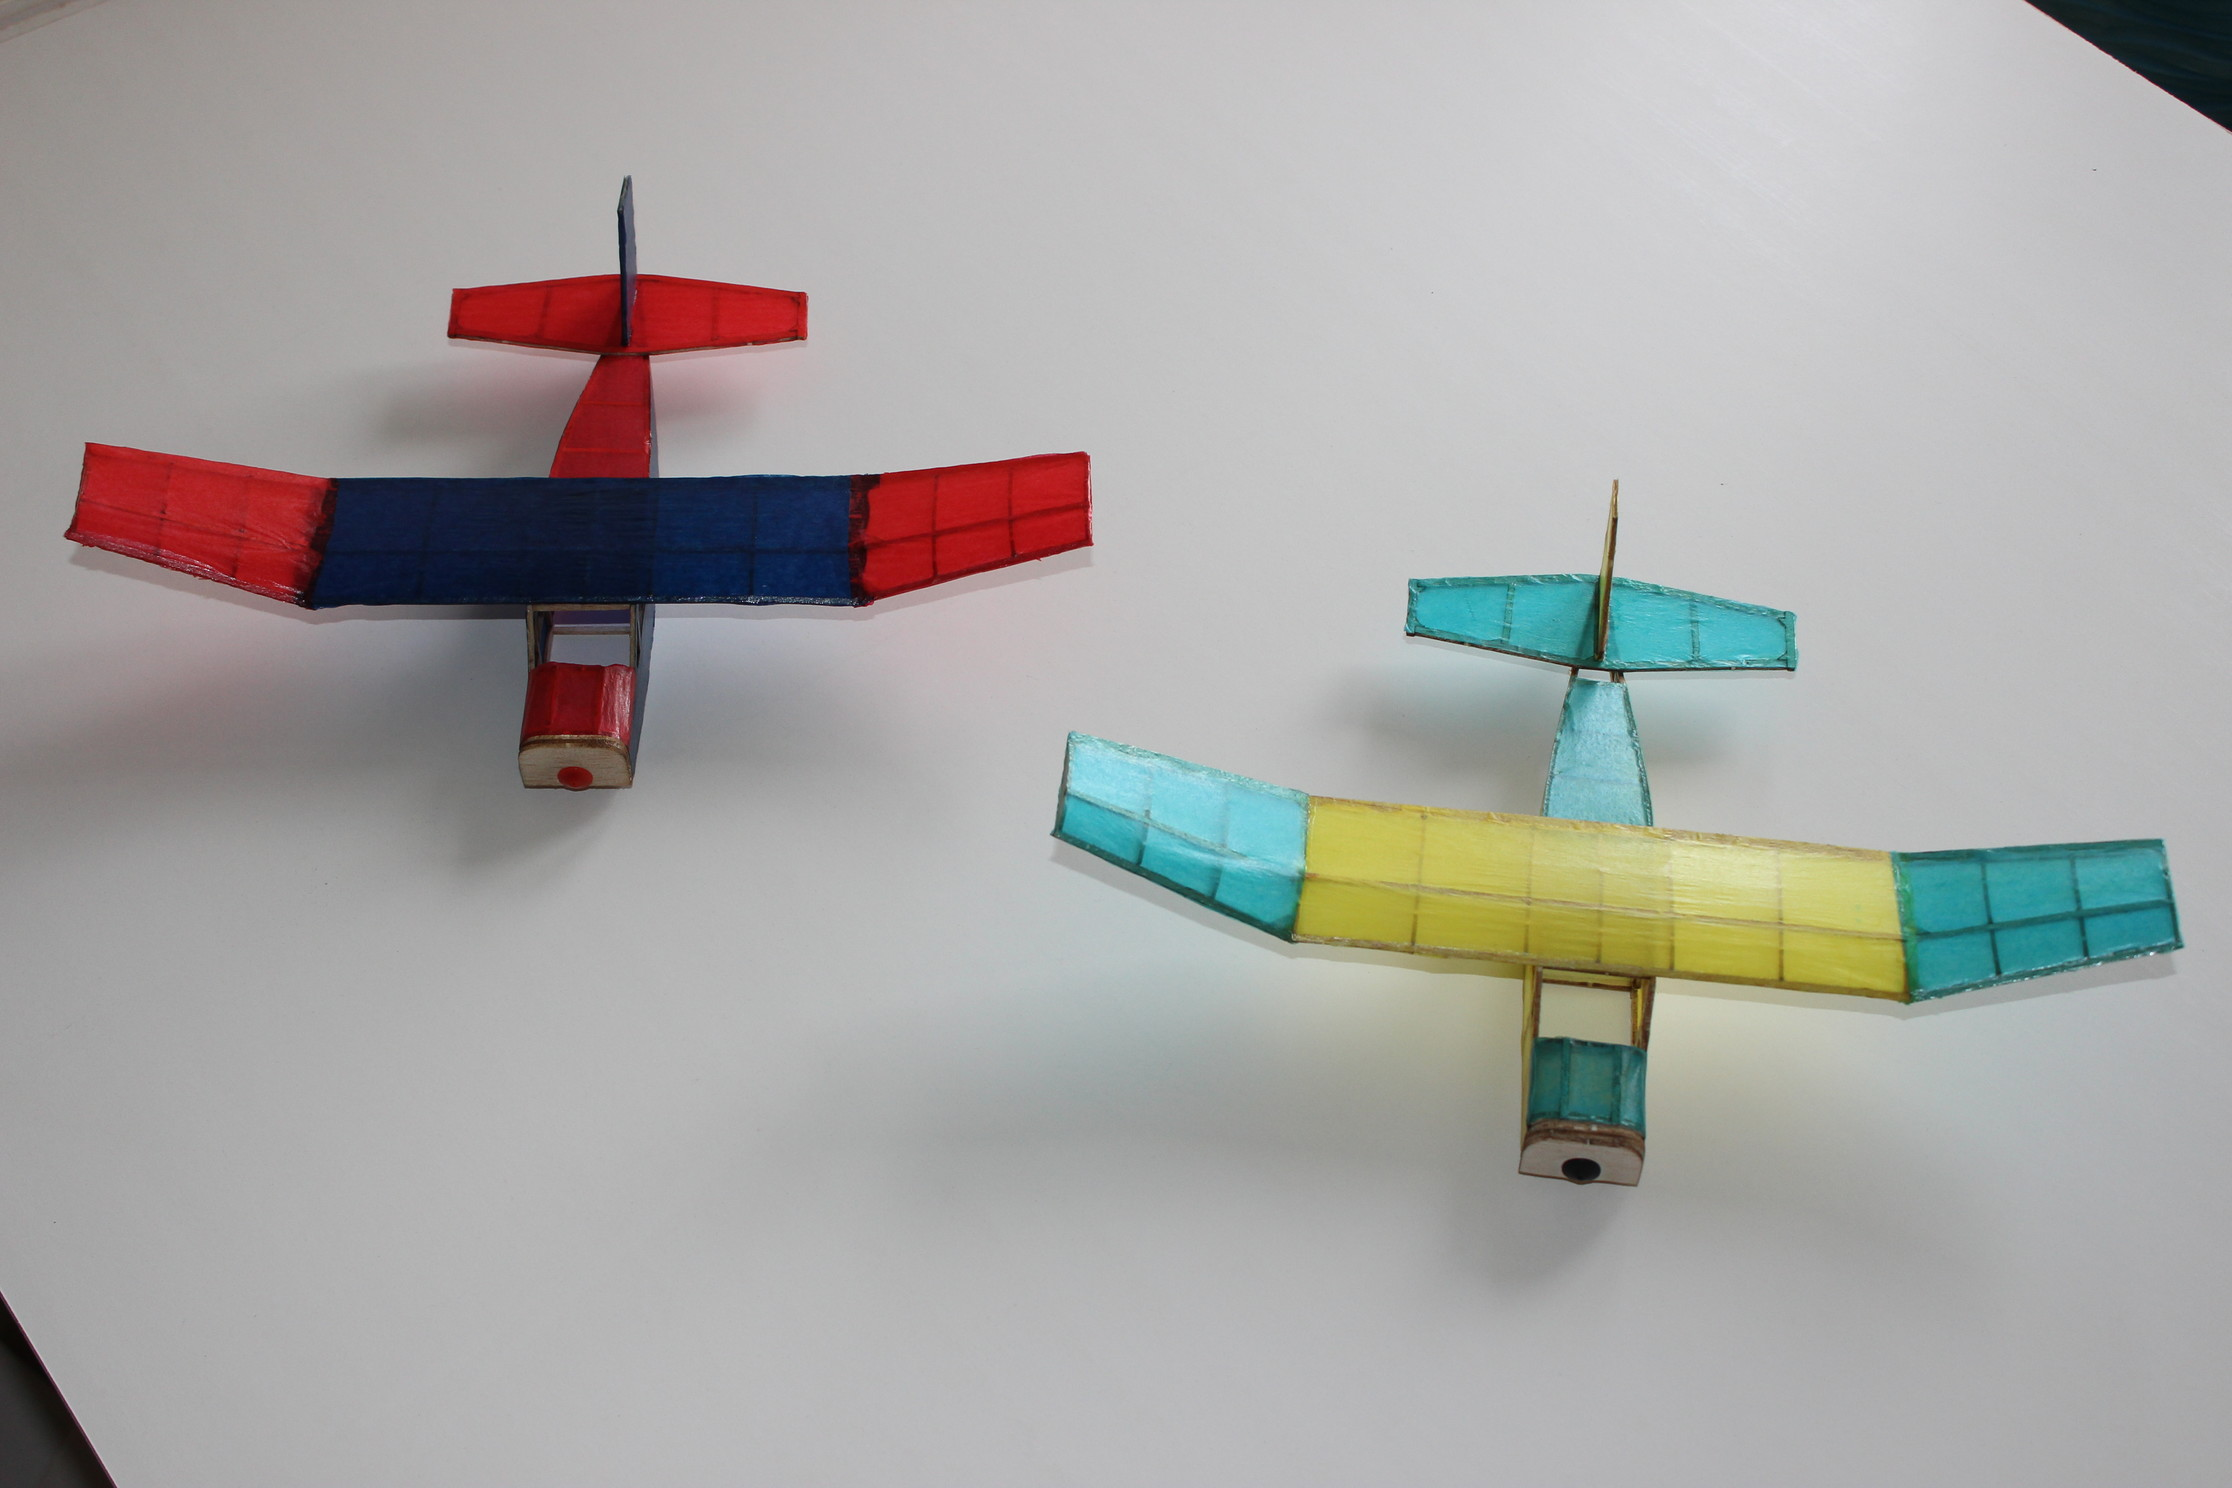 Do it yourself hobby kits for childrens akshatha b r pulse we offer simplified do it yourself hobby kits for children that offers a child with experiential learning about concepts in aeronautics propulsion etc solutioingenieria Images